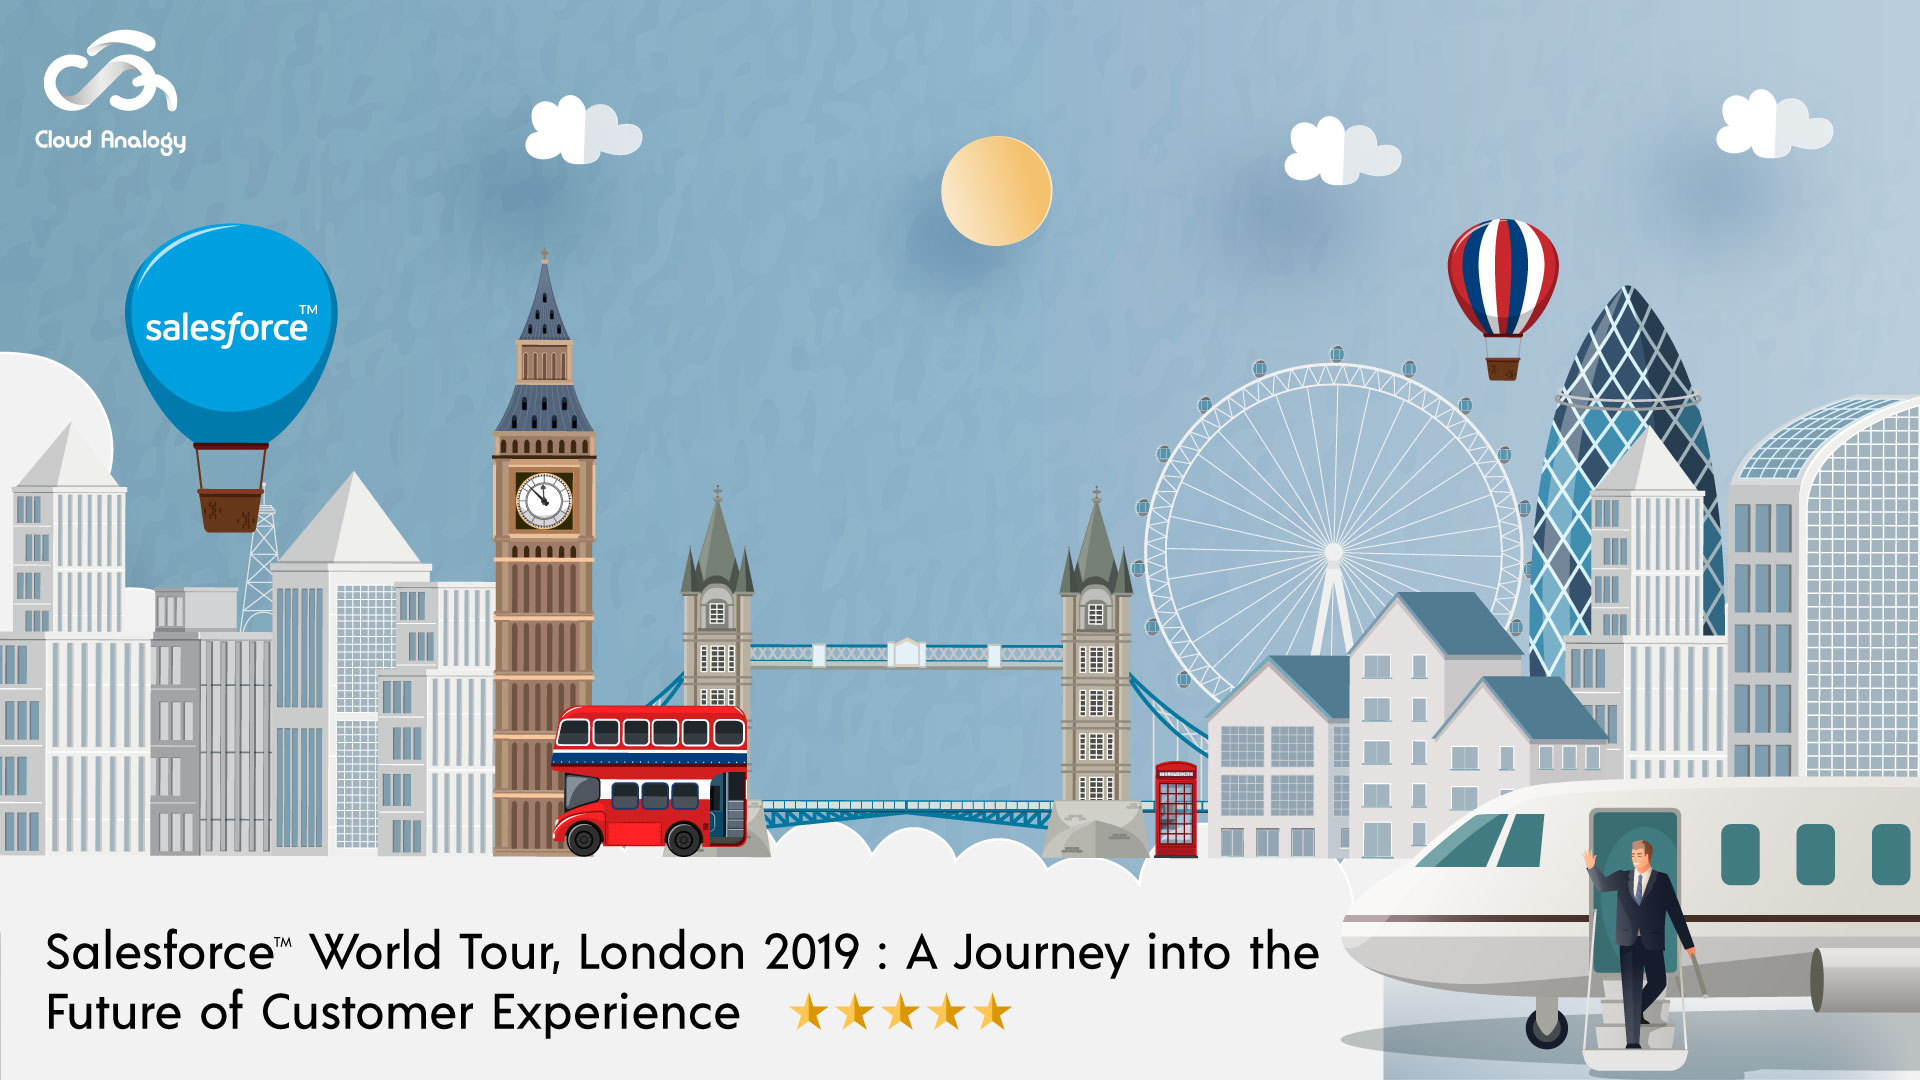 Salesforce World Tour London: A Journey into the Future of Customer Experience